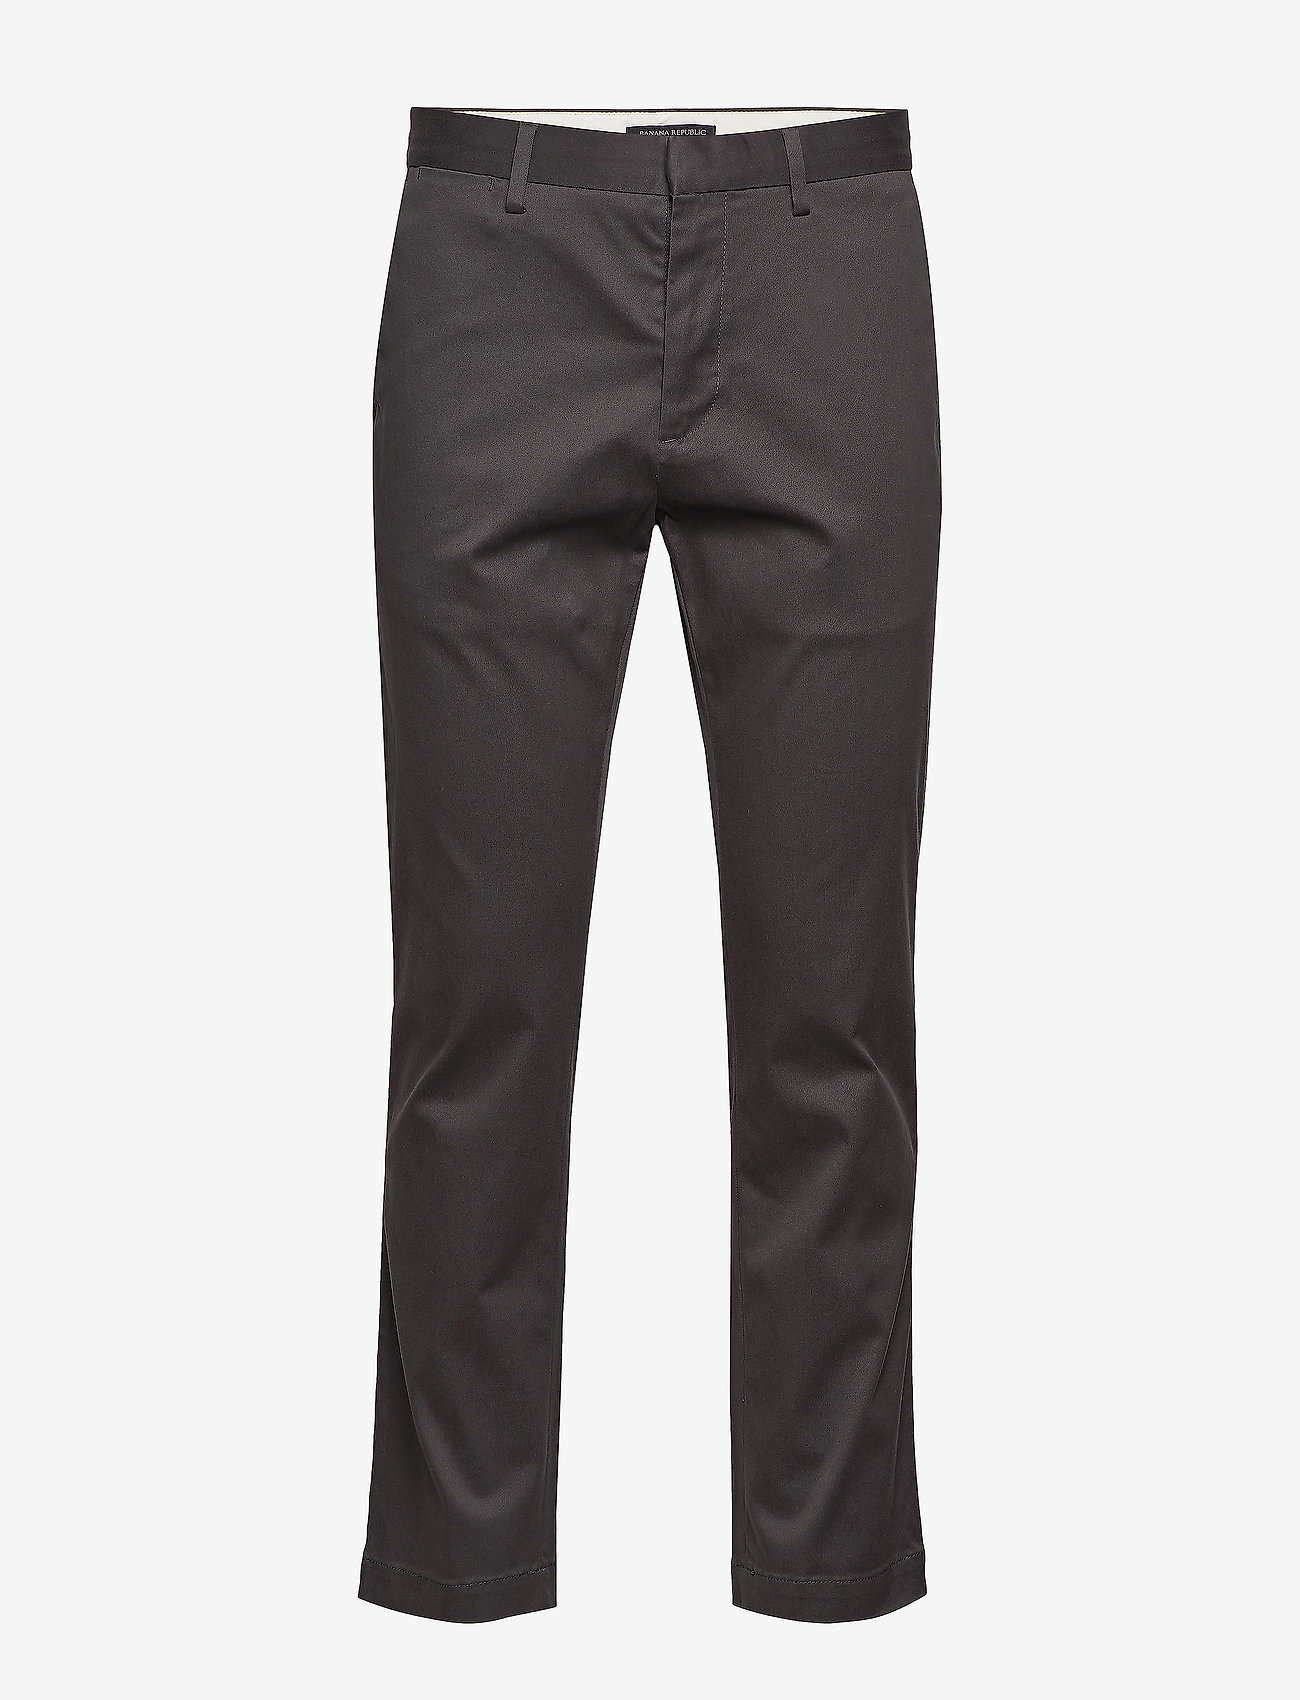 Banana Republic - Aiden Slim Rapid Movement Chino - chinos - charcoal 1 - 0